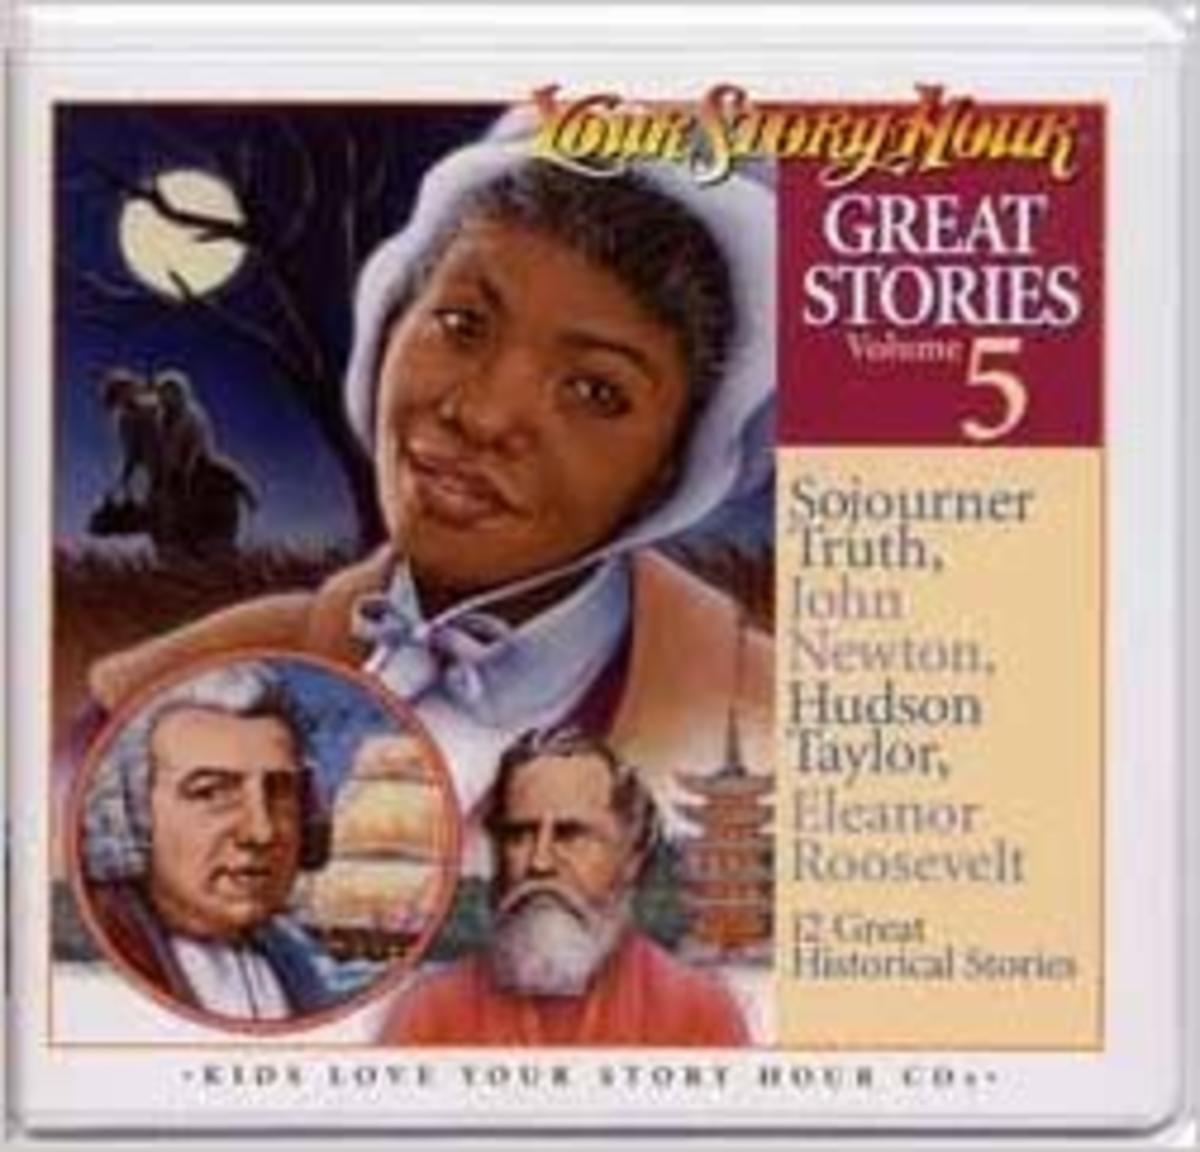 Great Stories Volume 5 CD Album (Great Stories, Volume 5) - Sojourner Truth